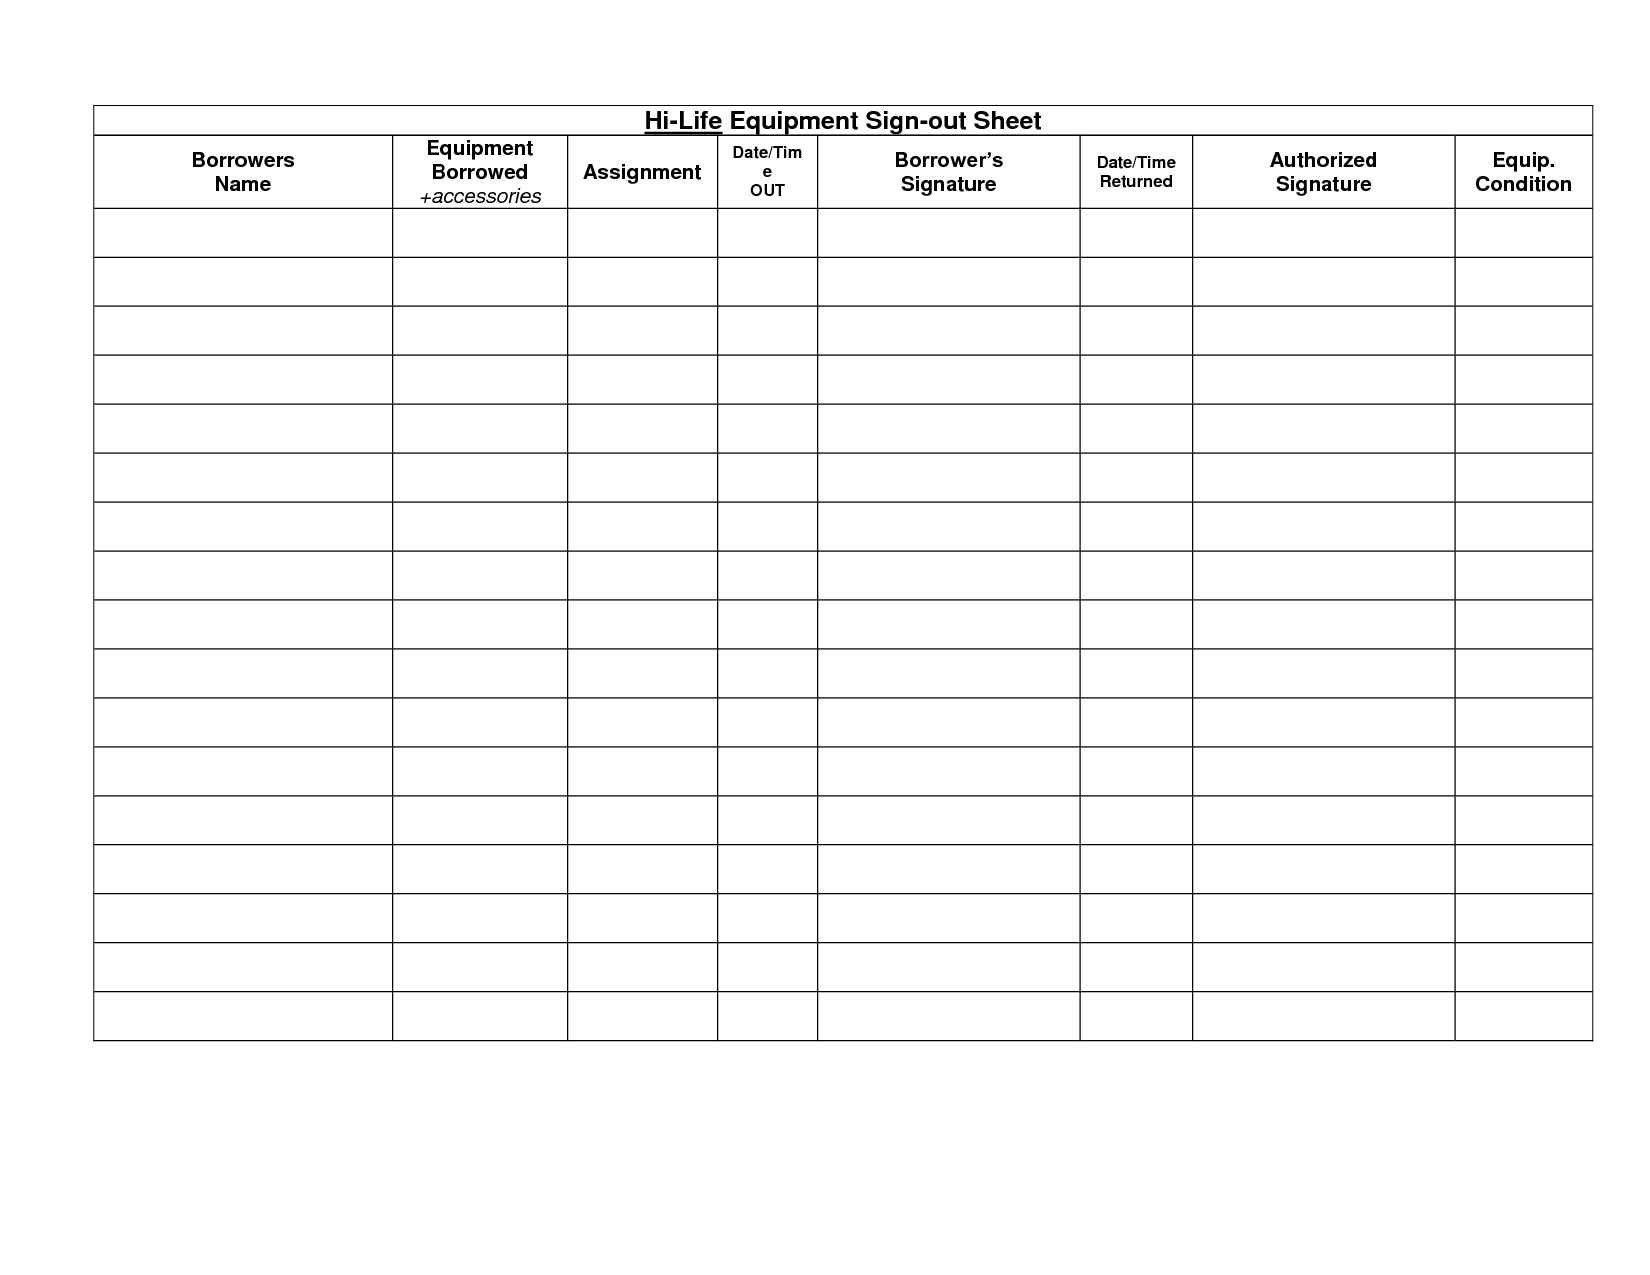 003 Outstanding Equipment Sign Out Sheet Template Picture  Pdf Free PrintableFull